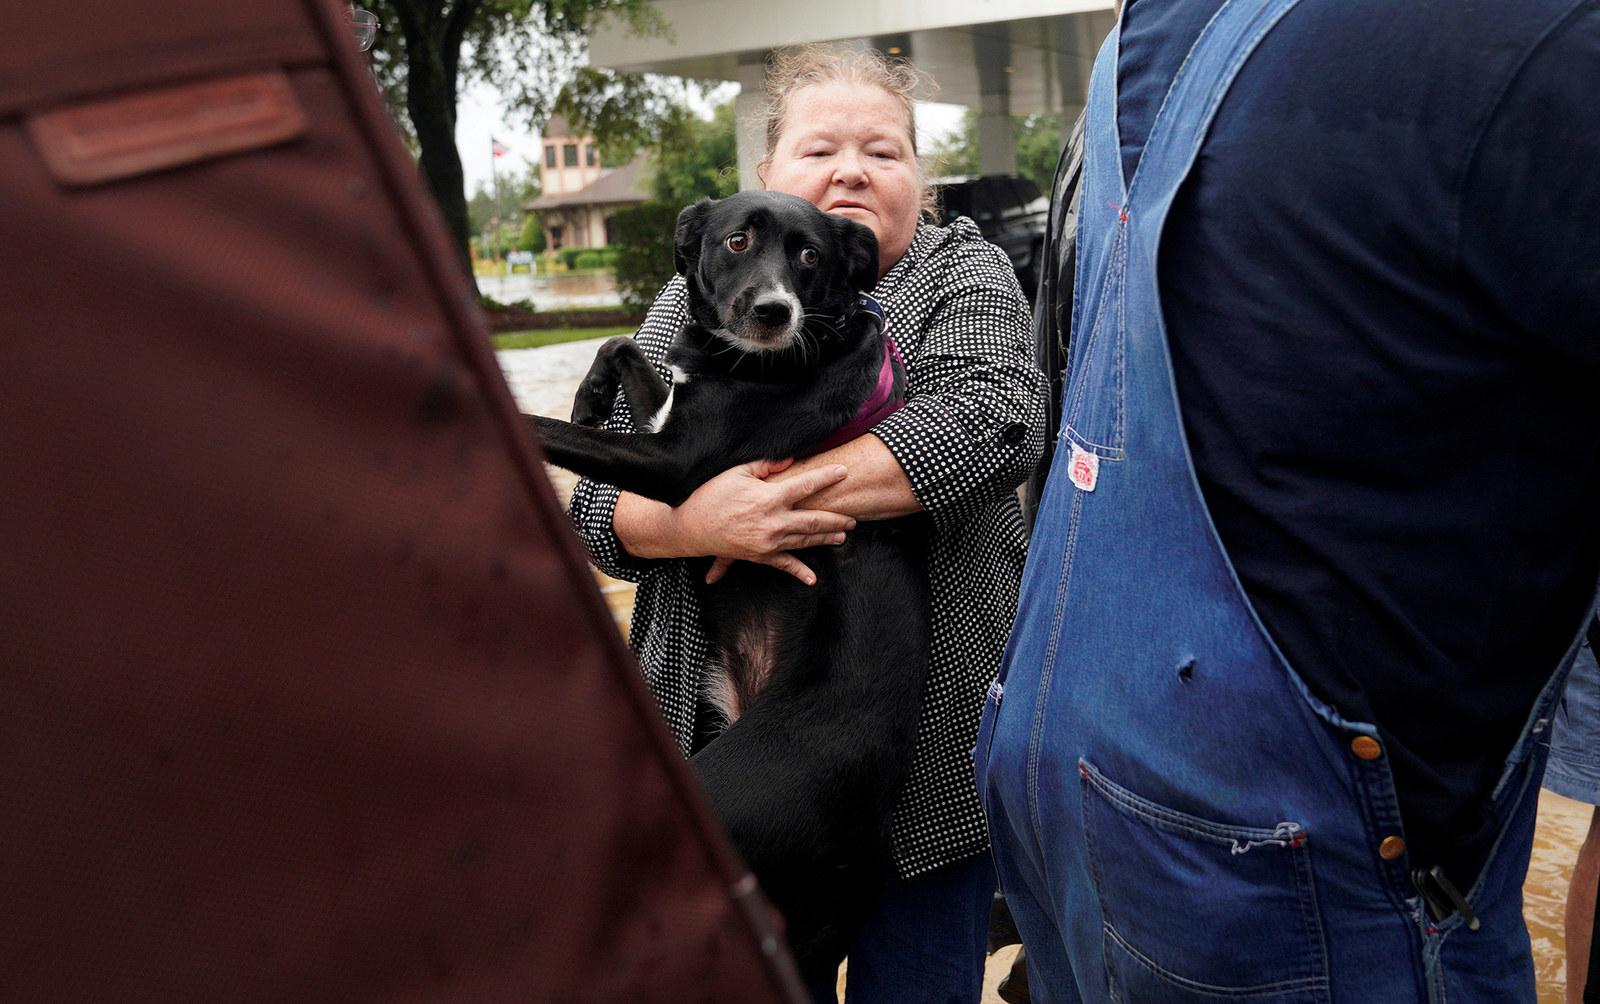 A woman carries her dog into a collector's vintage military truck to evacuate from flood waters in Dickinson, Texas, on Aug. 27.